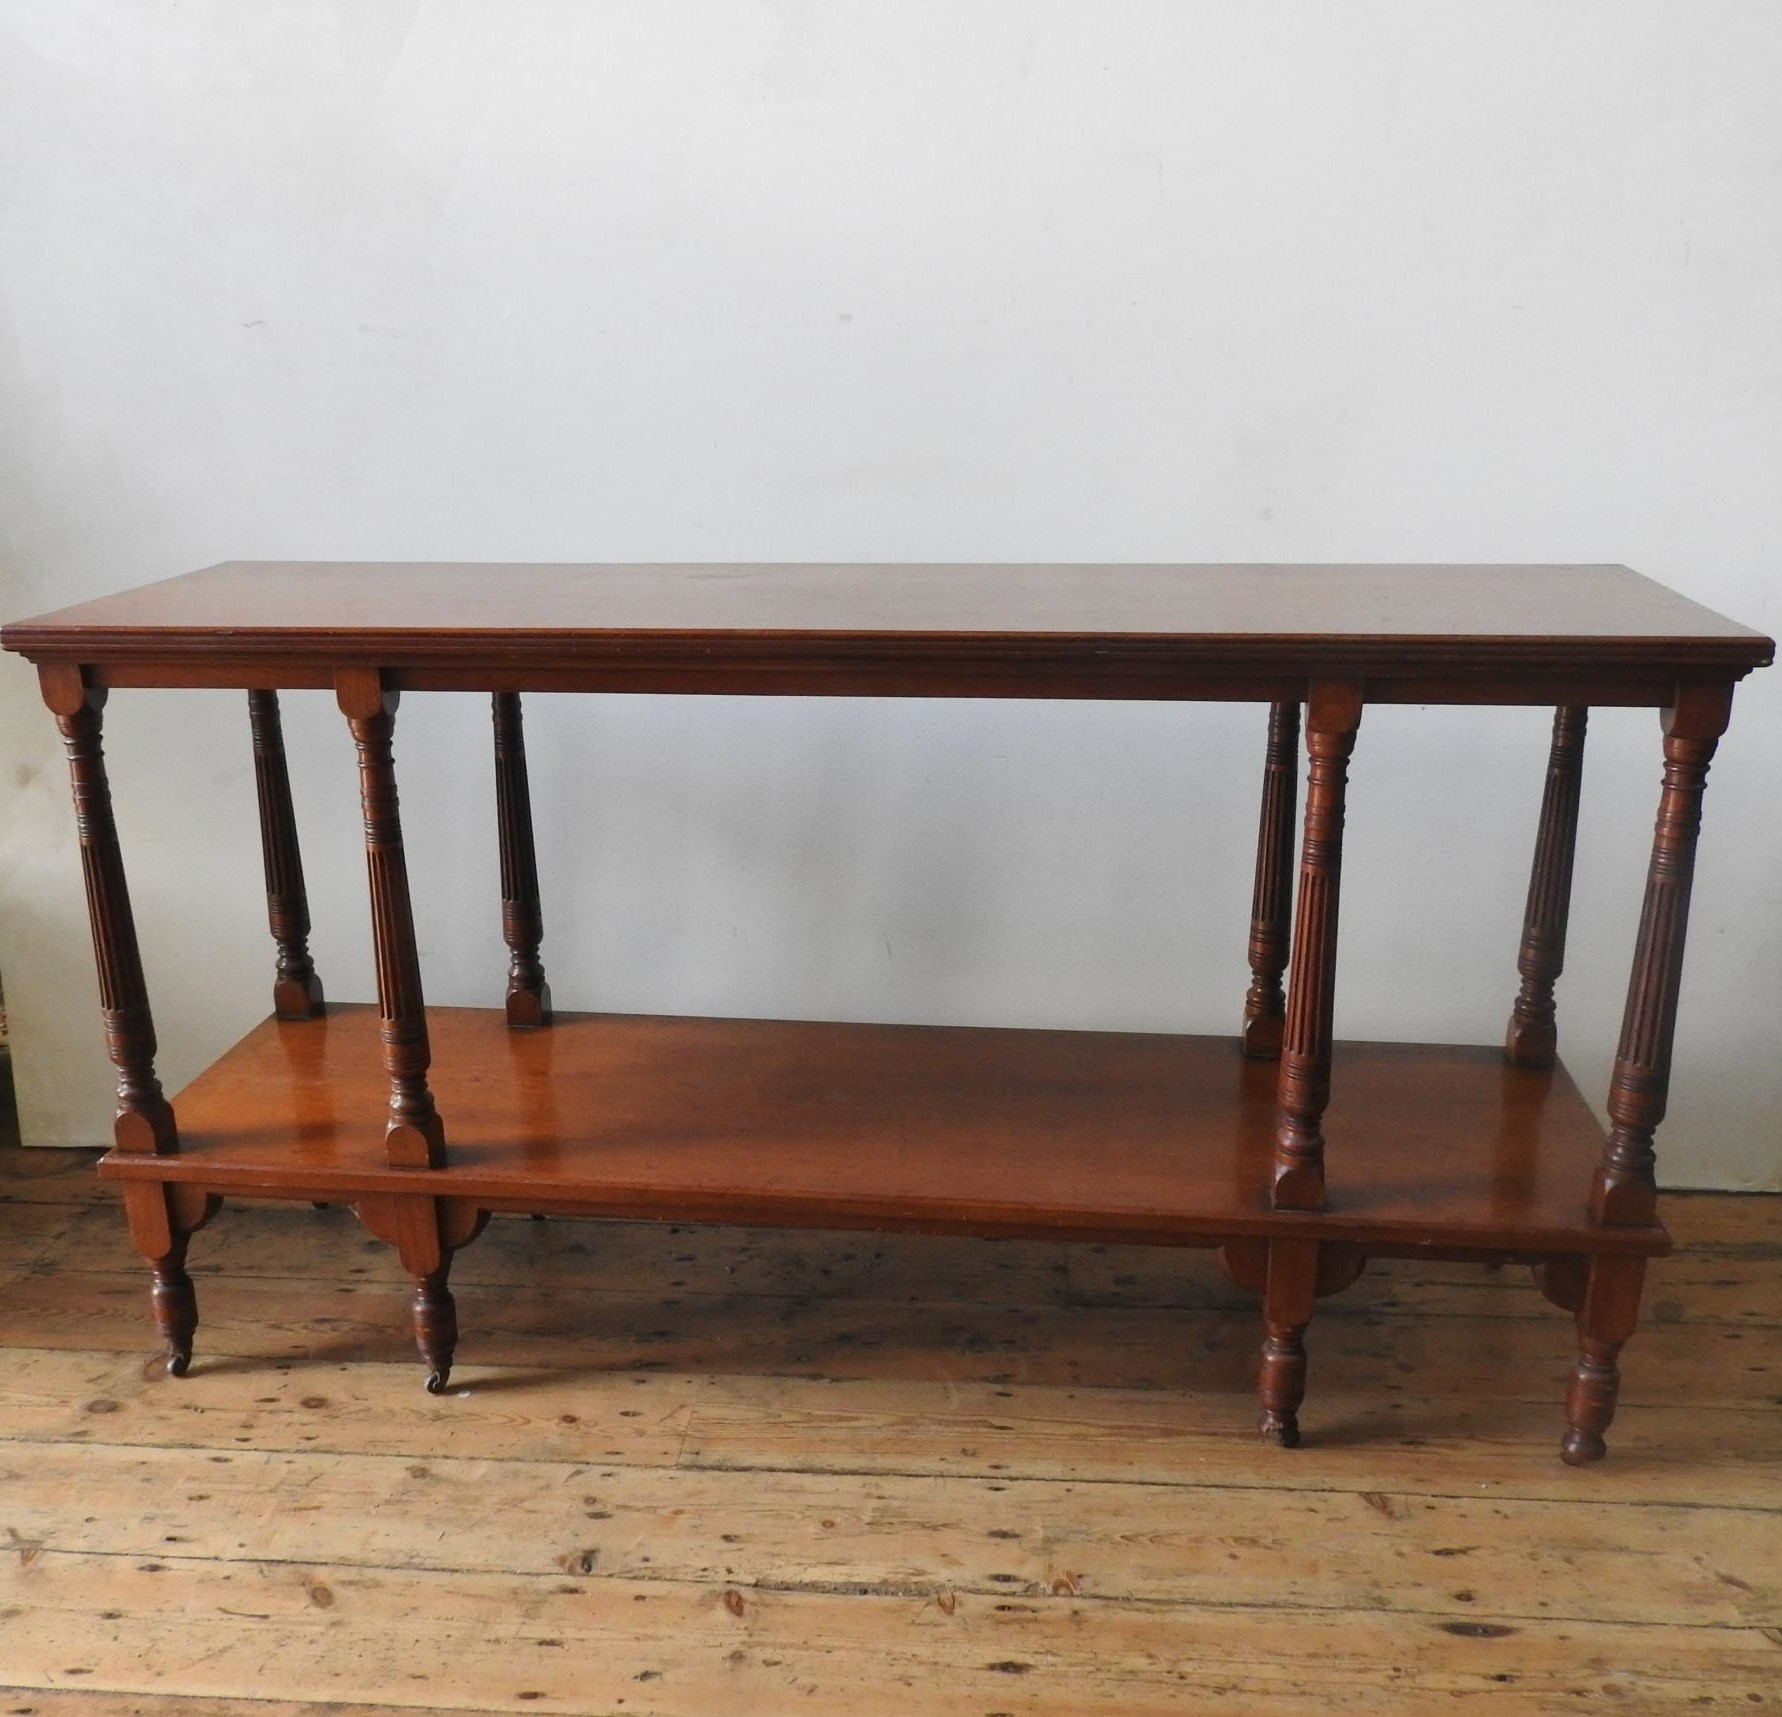 A LATE VICTORIAN MAHOGANY 2-TIER BUFFET, on eight turned legs with eight fluted tapered supporting - Image 2 of 3